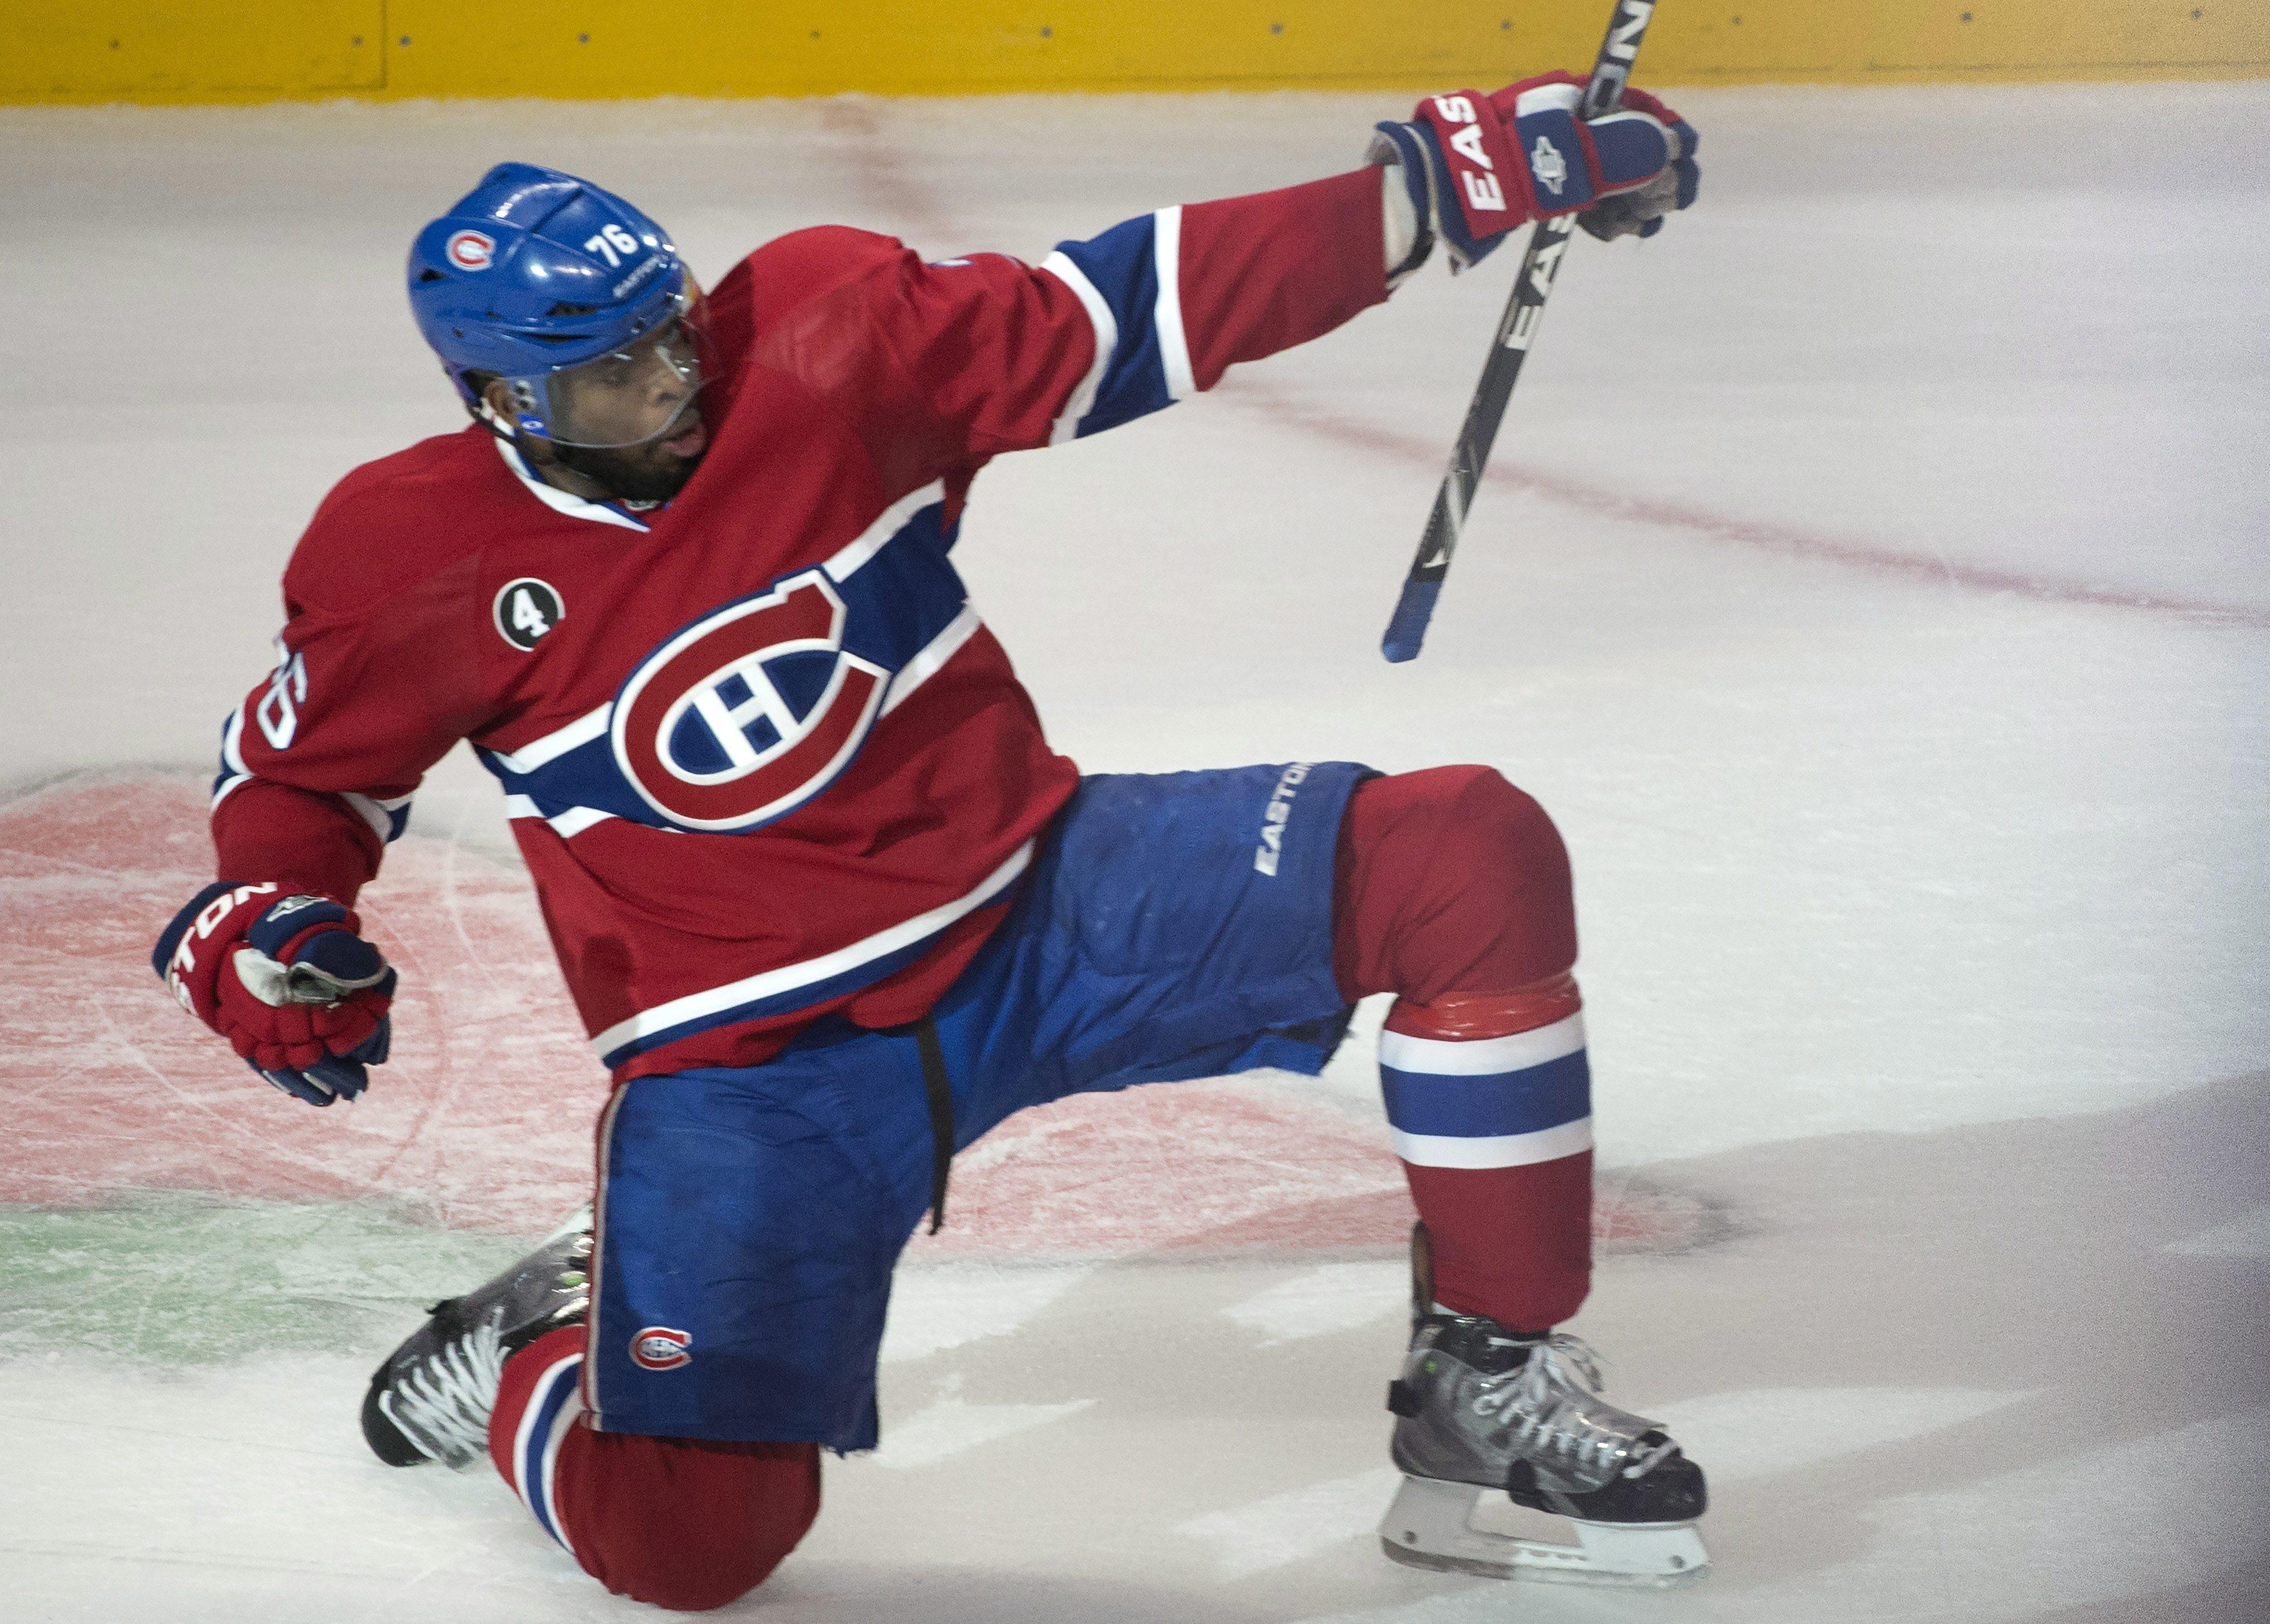 d111c5af809 P.K. Subban acquired by Predators from Canadiens for Shea Weber in  blockbuster